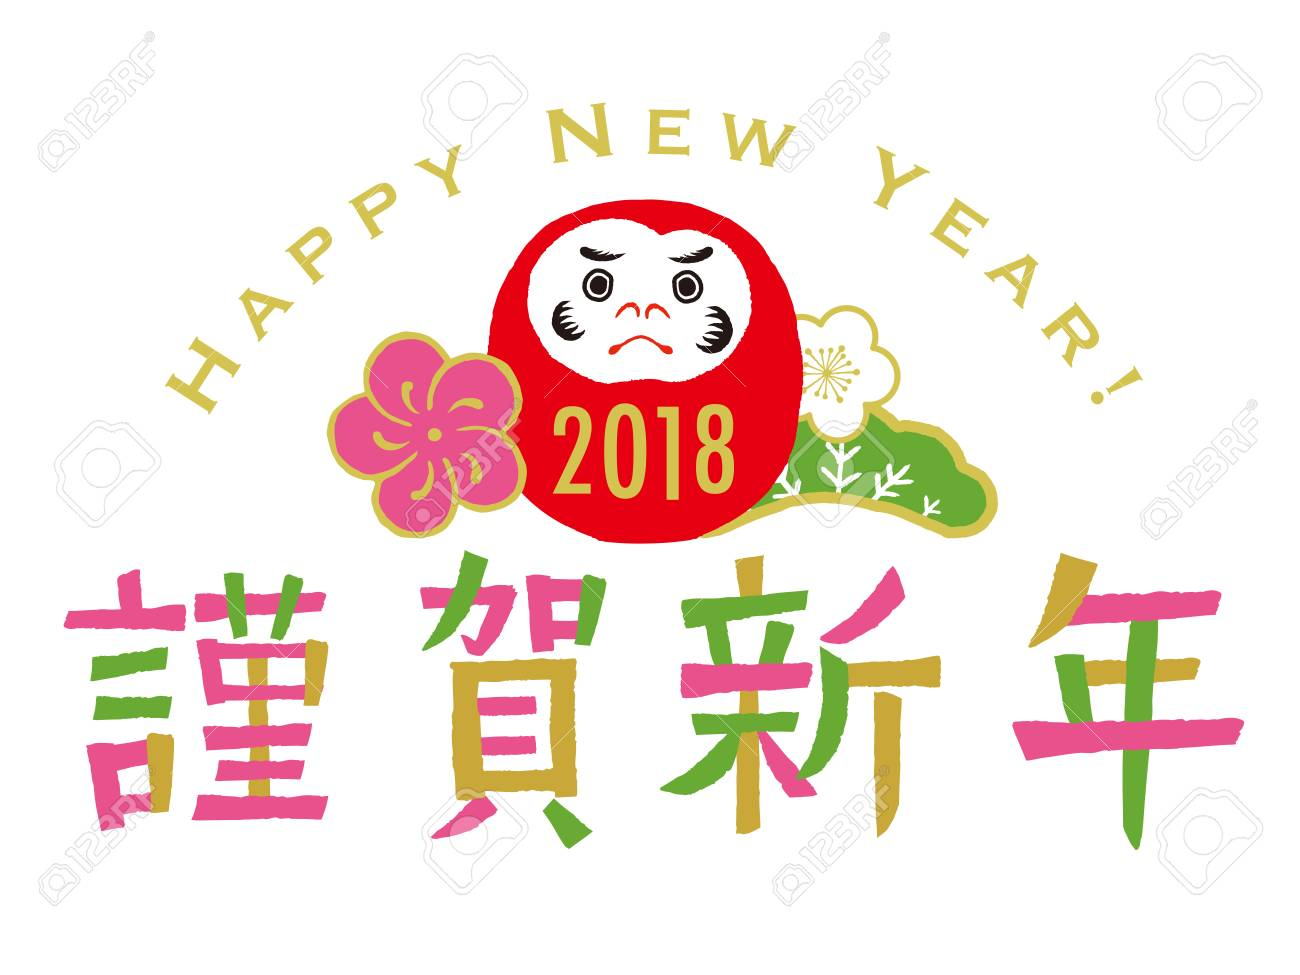 New years greetings japanese translation is new years greetings new years greetings japanese translation is m4hsunfo